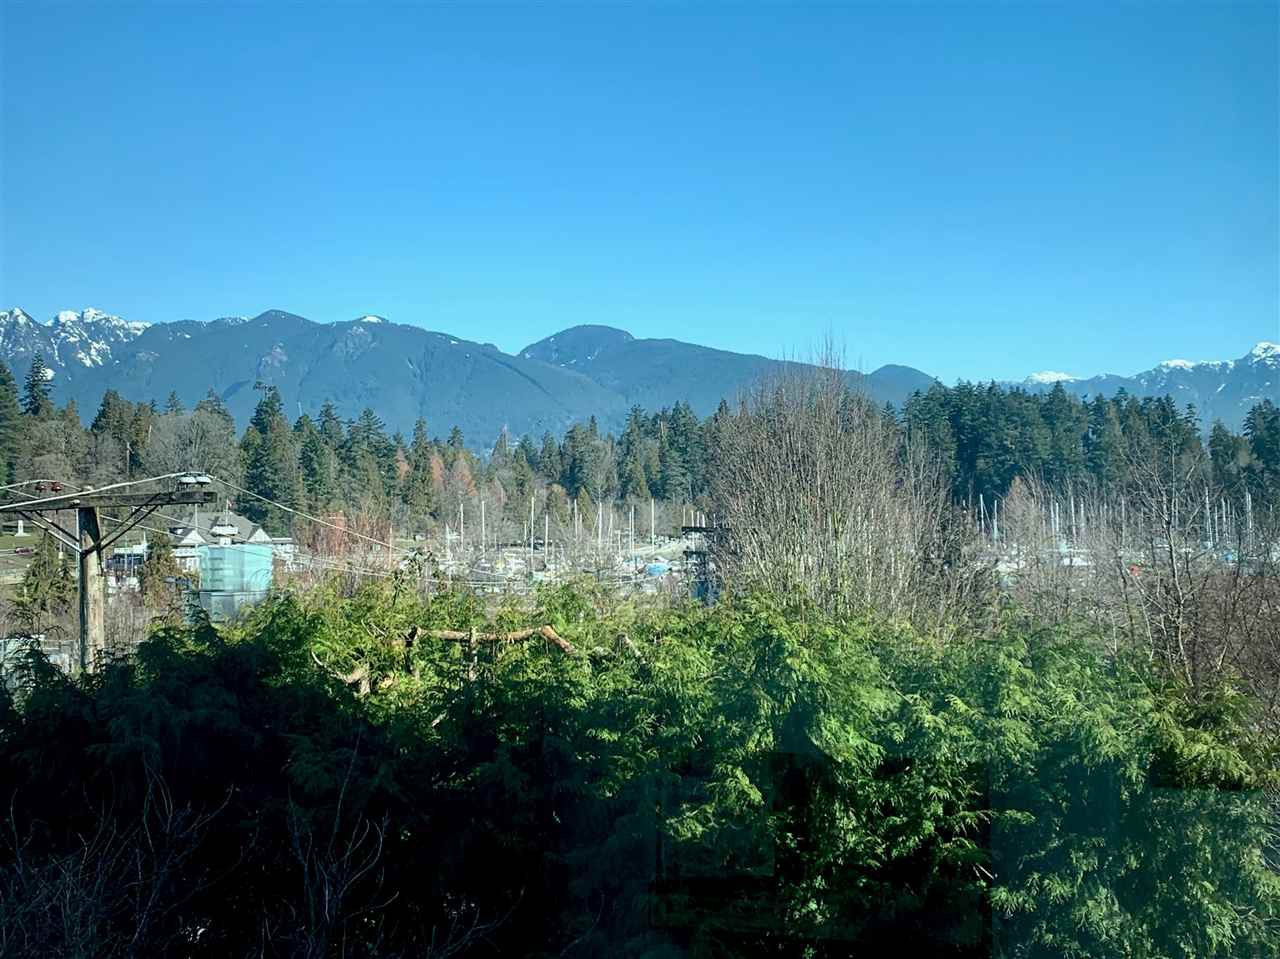 Main Photo: 403 1888 ALBERNI STREET in Vancouver: West End VW Condo for sale (Vancouver West)  : MLS®# R2443357